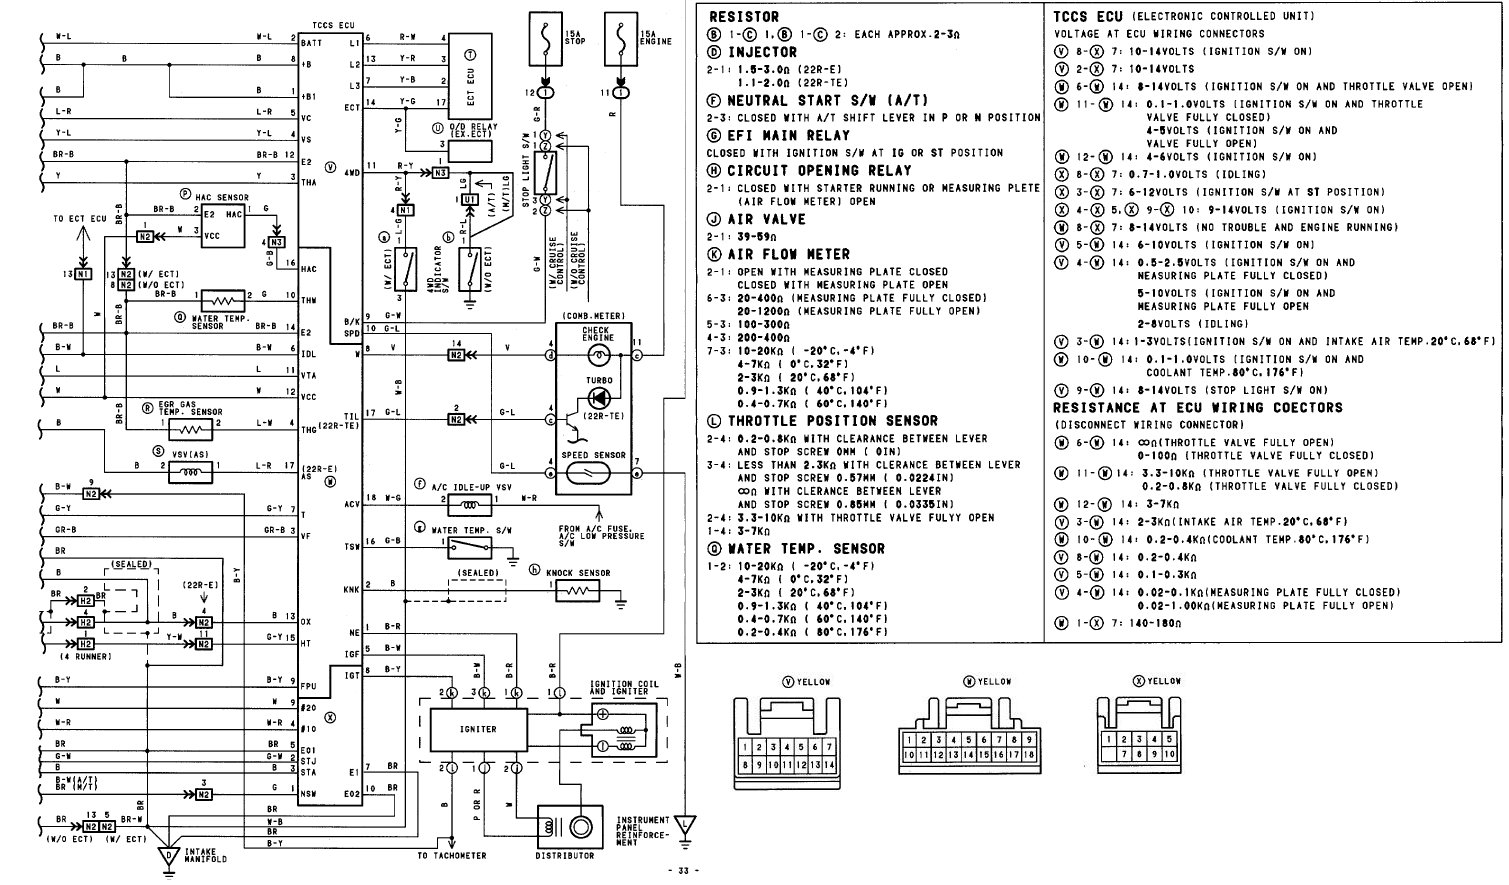 toyota 4runner wiring diagram jHkLHrj 2000 4runner wiring diagram 2005 4runner wiring diagram \u2022 wiring  at bakdesigns.co